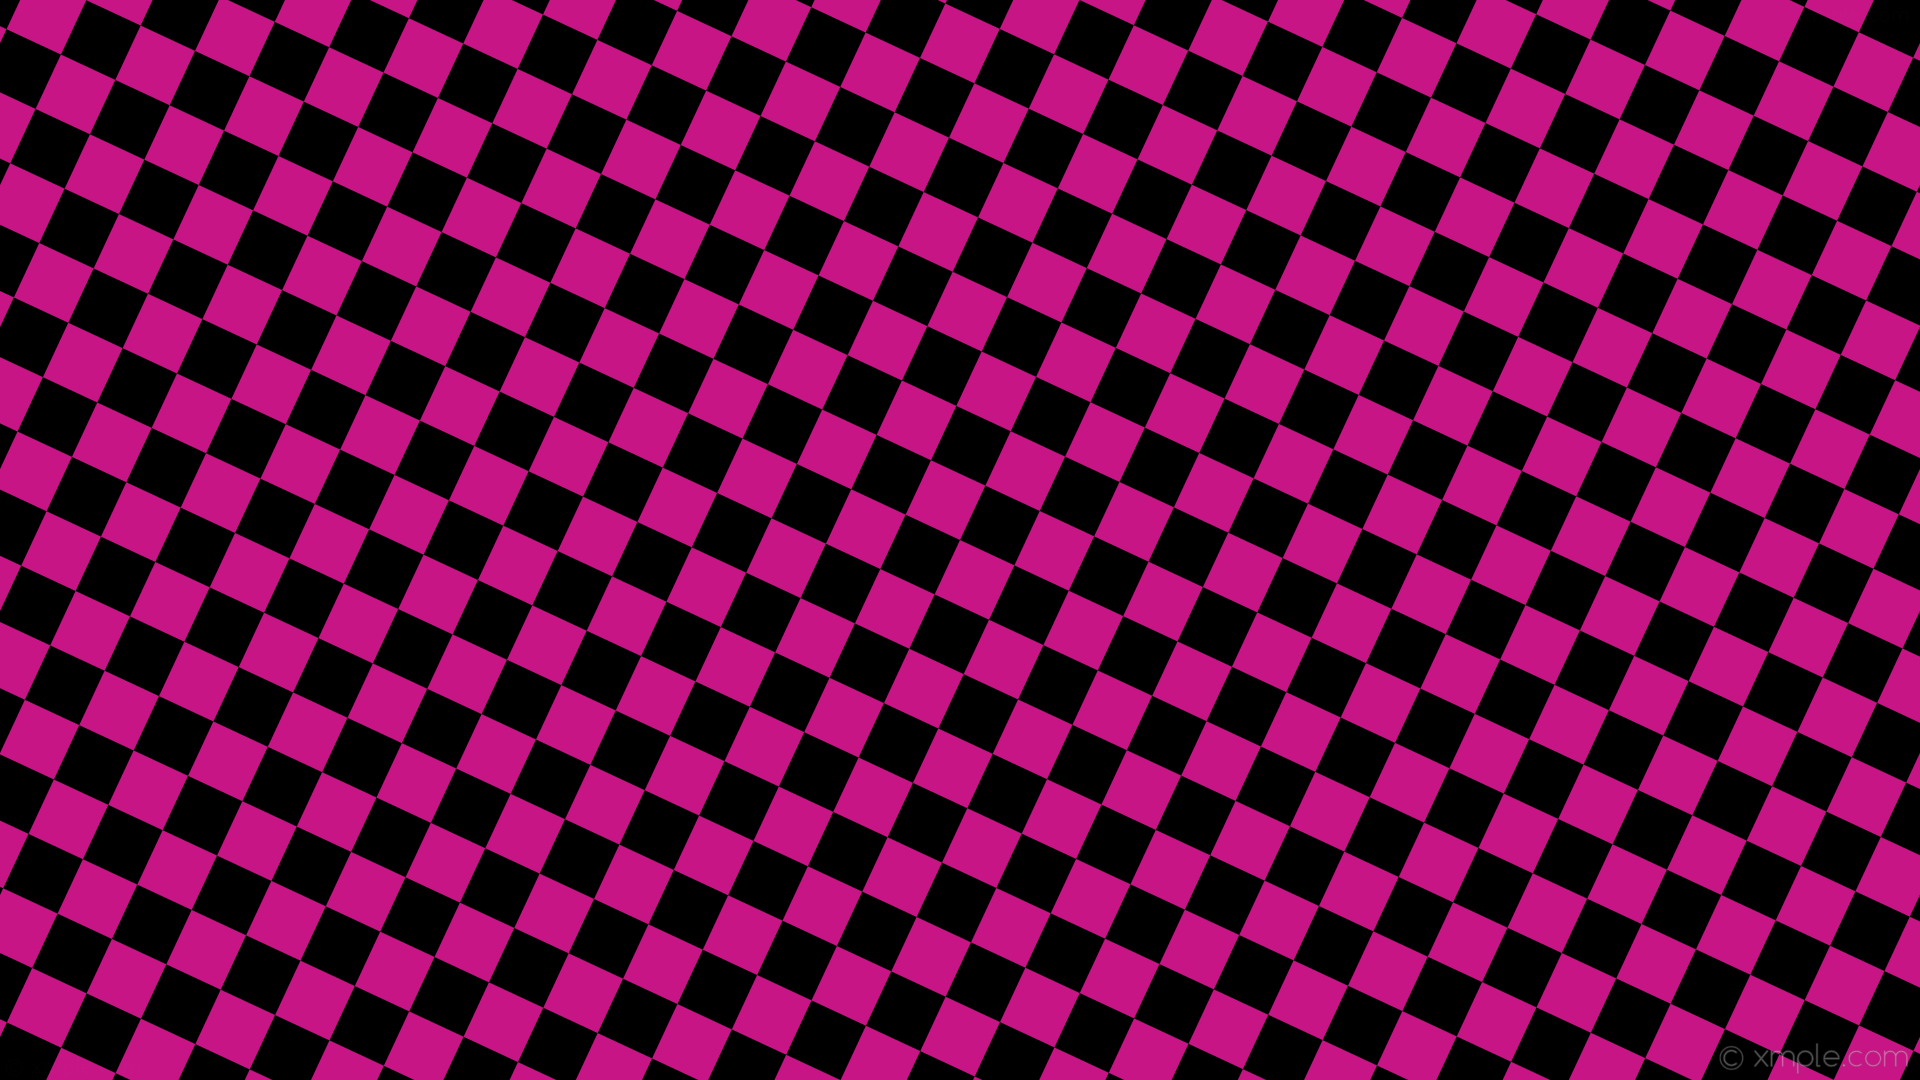 How to get rid of purple and black checkered in gmod | Help/FAQ